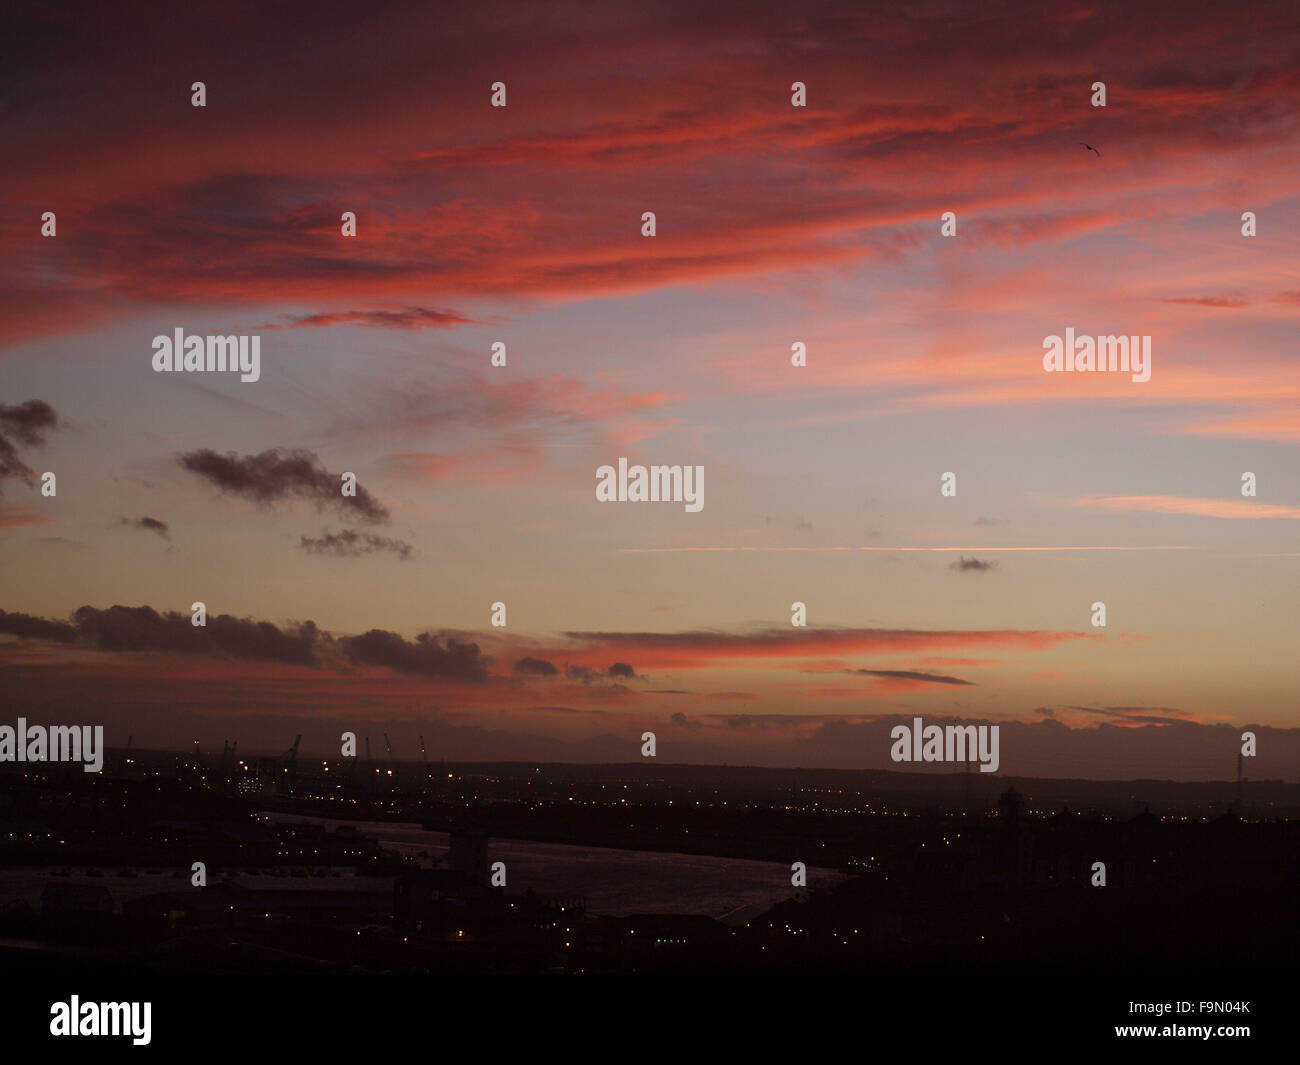 Newcastle Upon Tyne, 17th December 2015, Uk weather. A winters sunset over the river Tyne in North East England. - Stock Image